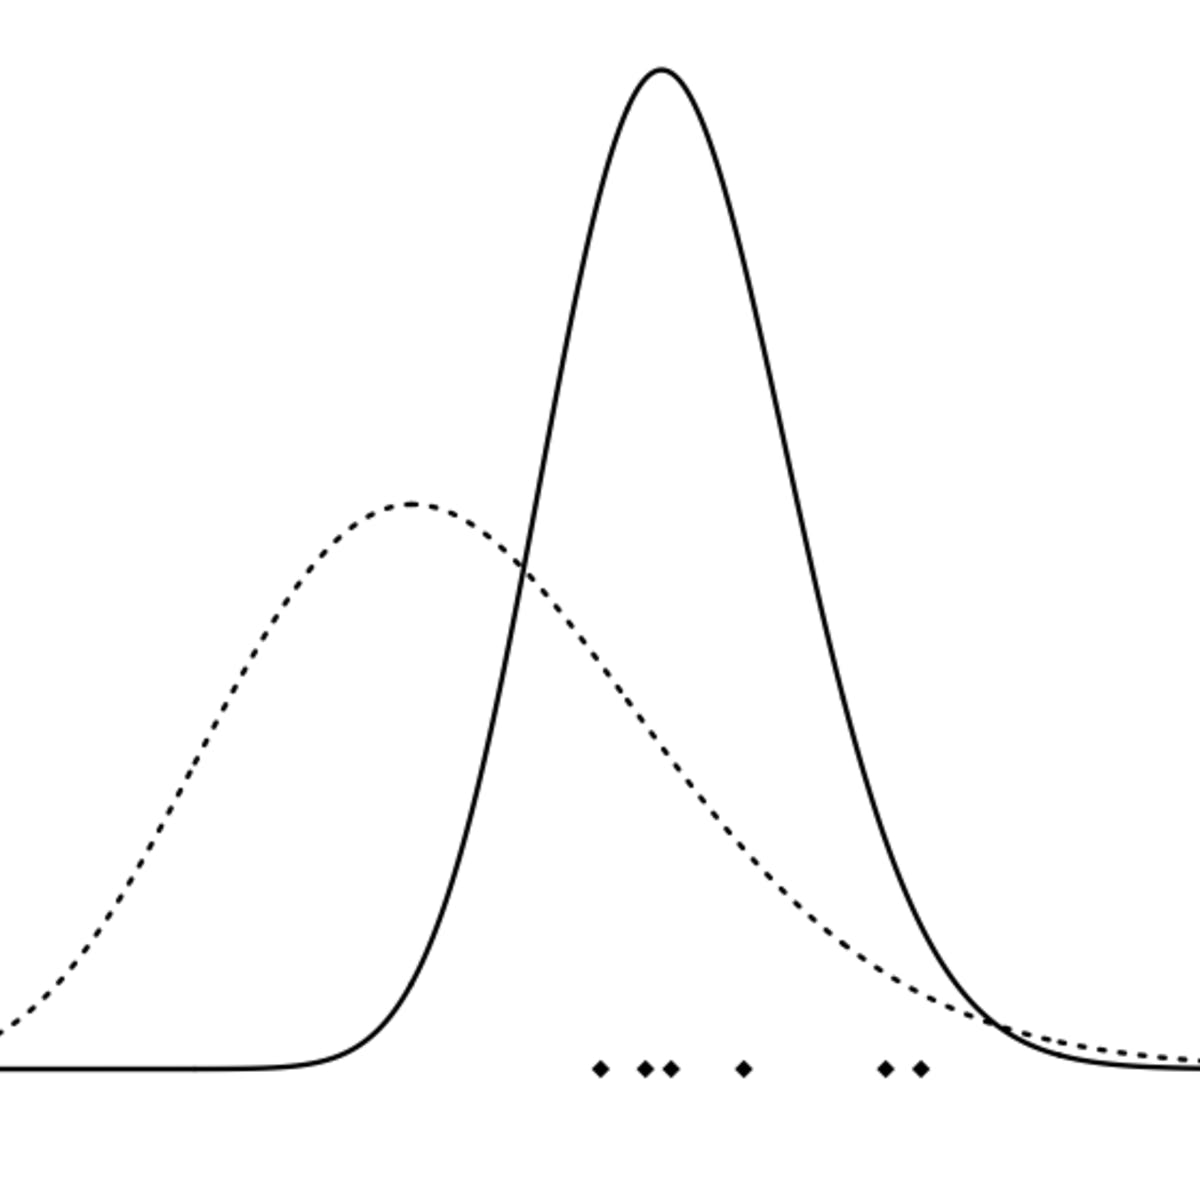 Bayesian Statistics: From Concept to Data Analysis